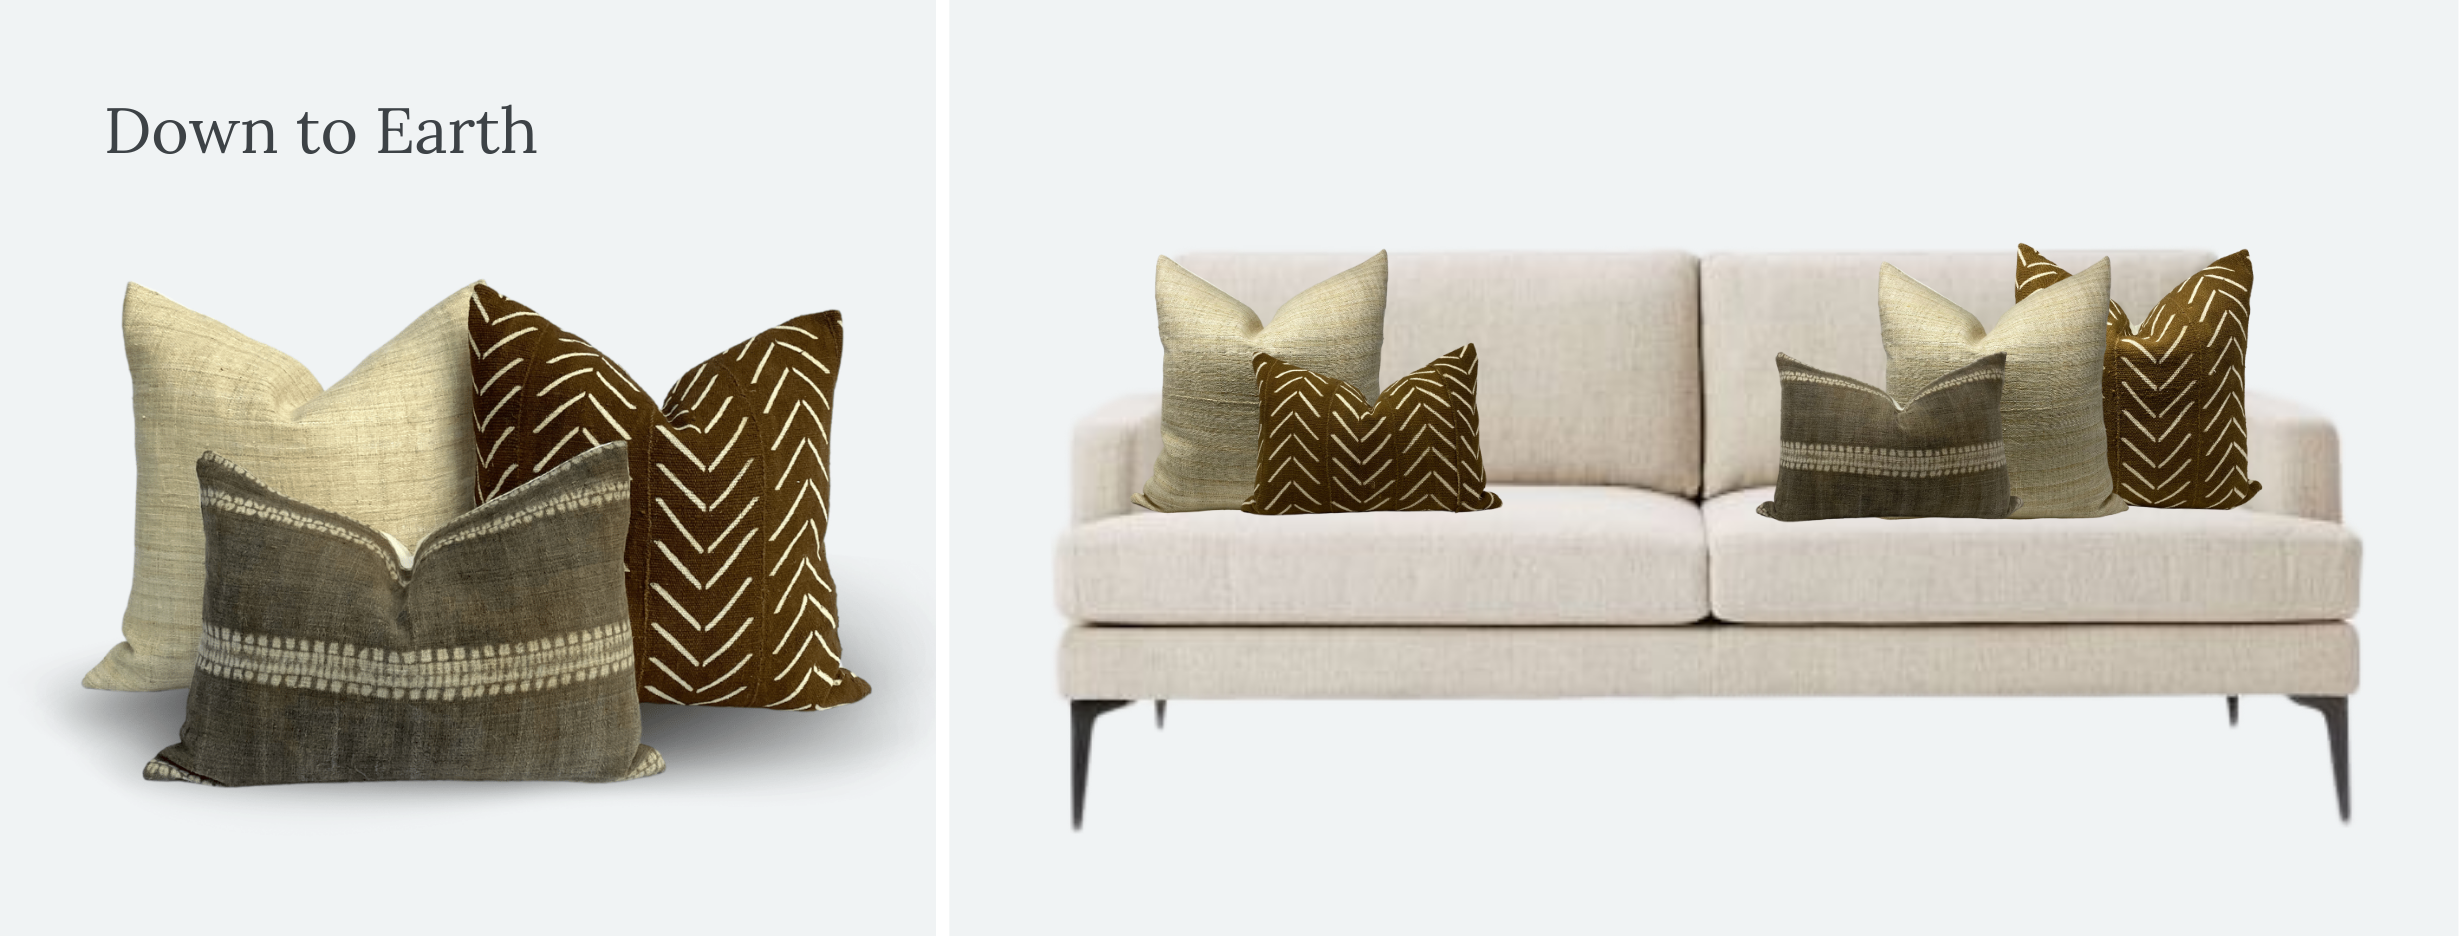 Everand Down to Earth throw pillow styling on West Elm Andes sofa